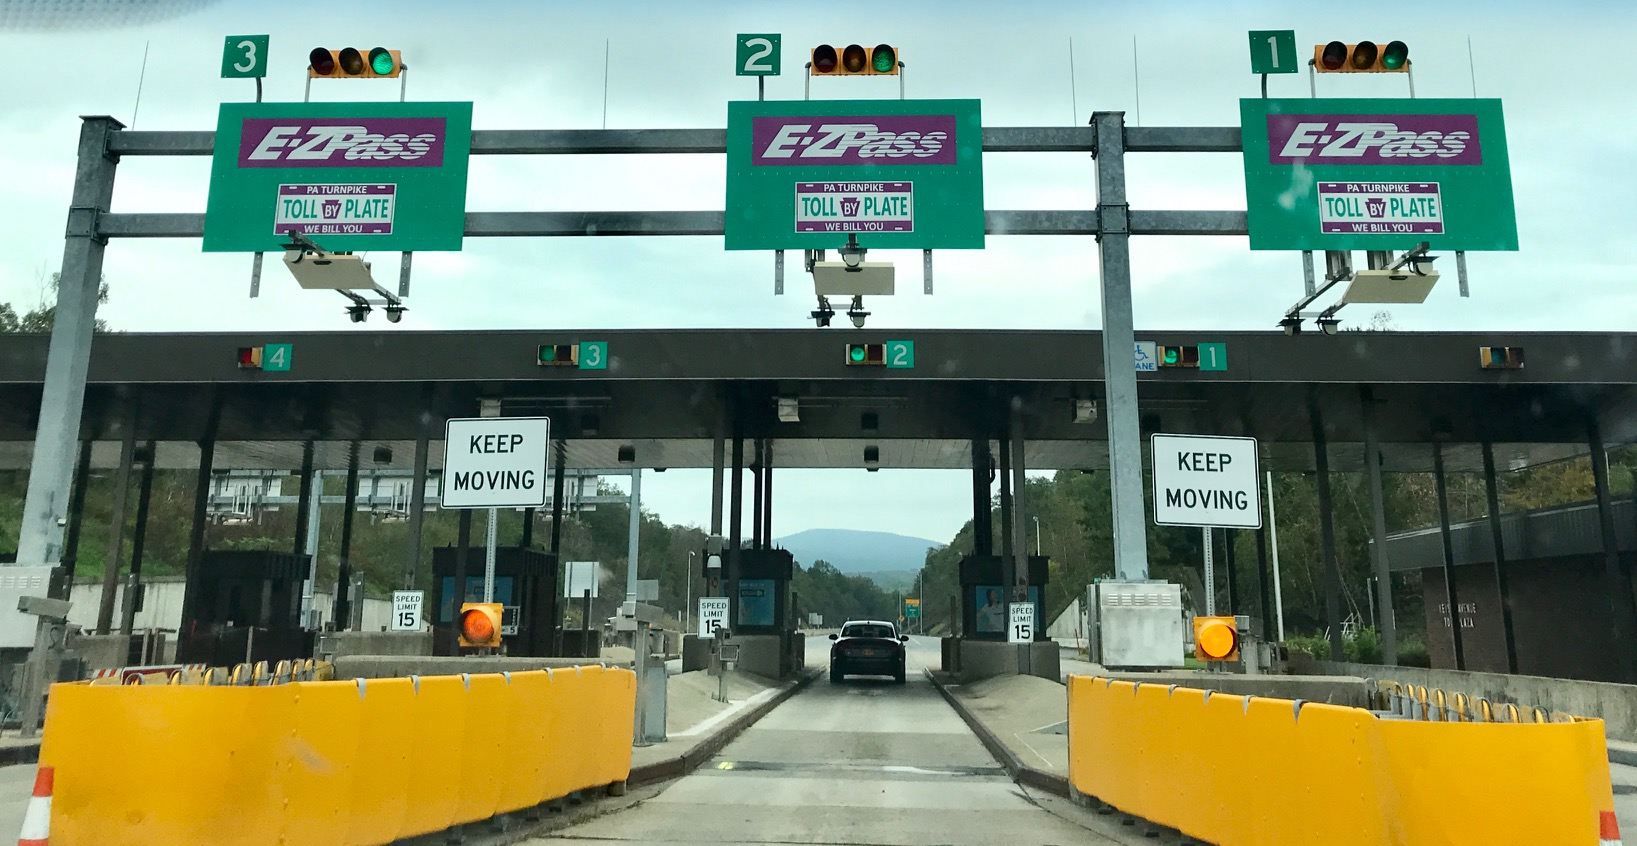 Pa. Turnpike is on 'road to ruin', auditor general says; toll hikes driving people away